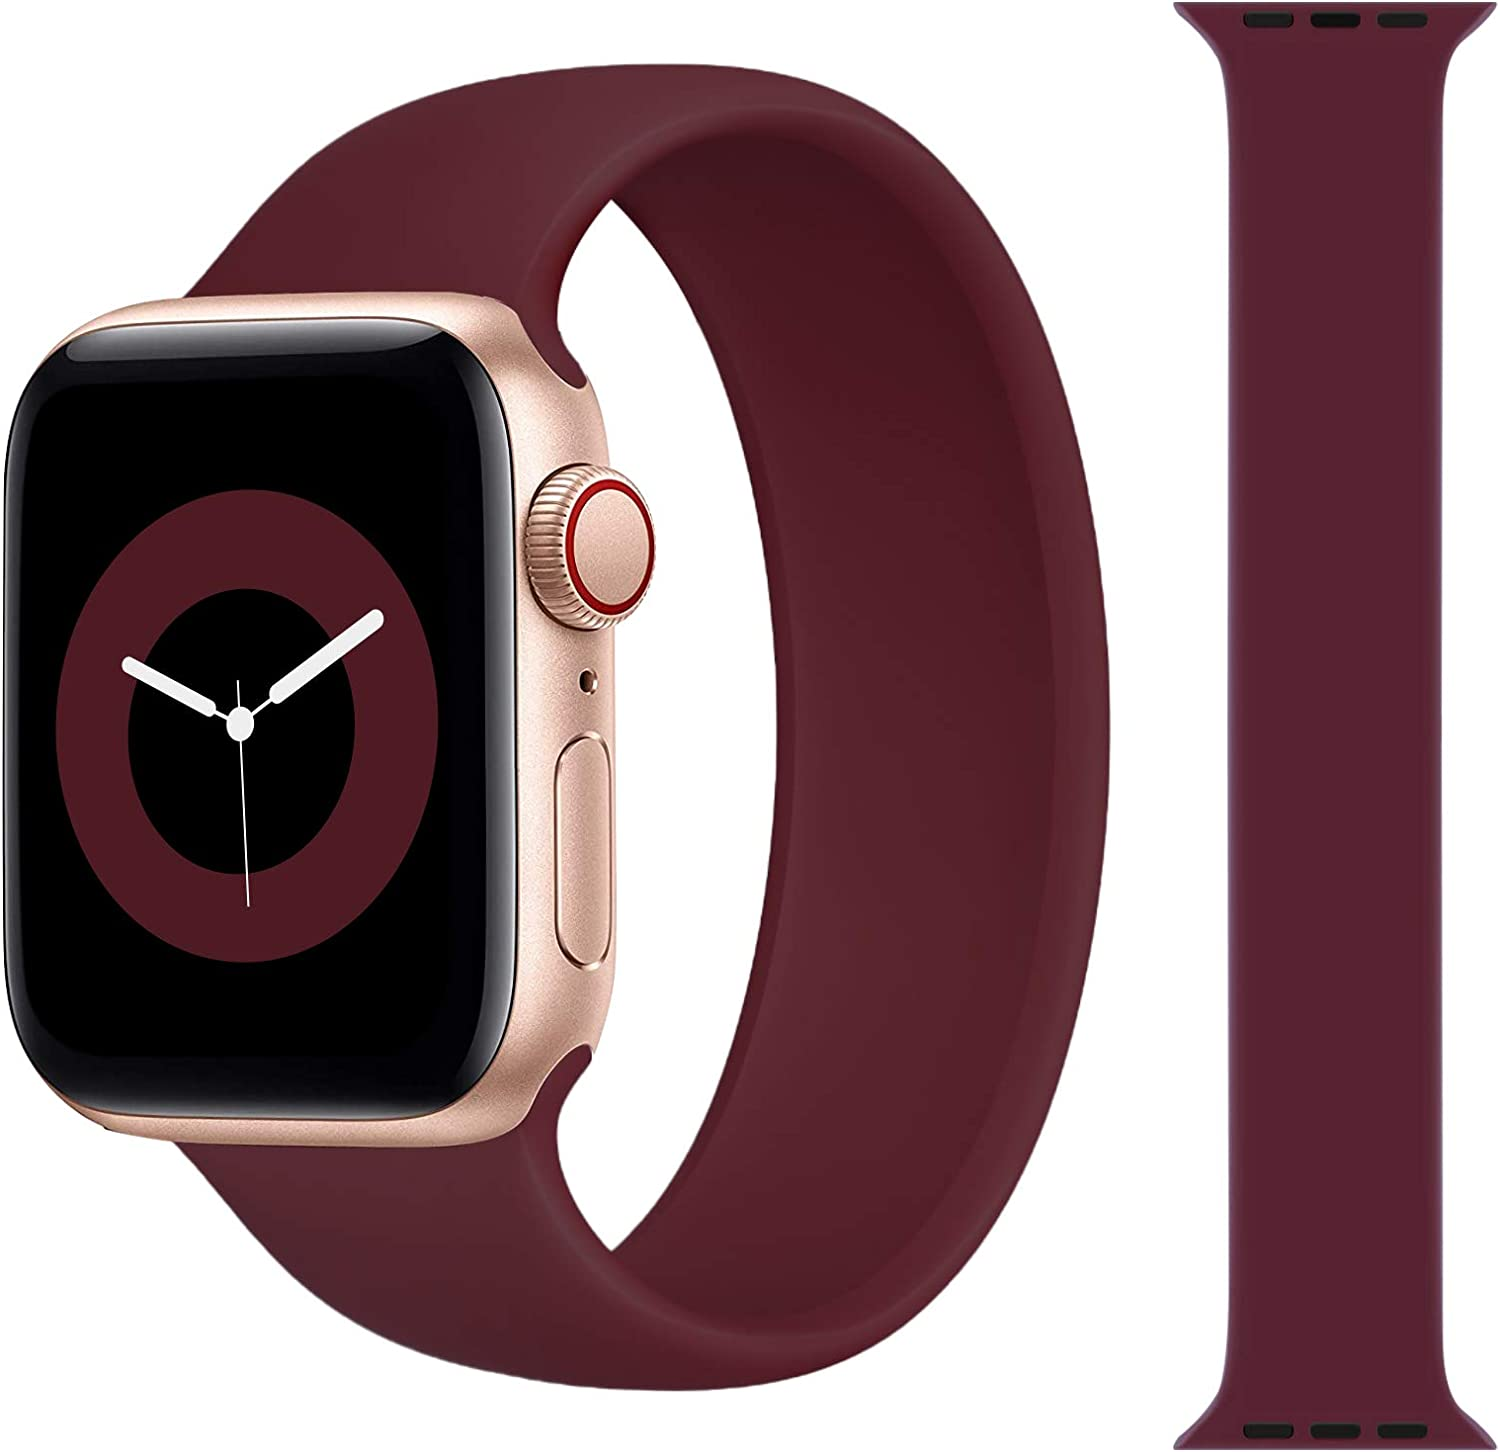 Solo Loop Strap Compatible with Apple Watch Band 38mm 40mm 42mm 44mm, Sport Elastics Silicone Apple Watch Bands Women Men, Replacement Wristband for iWatch Series 6 5 4 3 2 1 SE (Wine Red 42S)